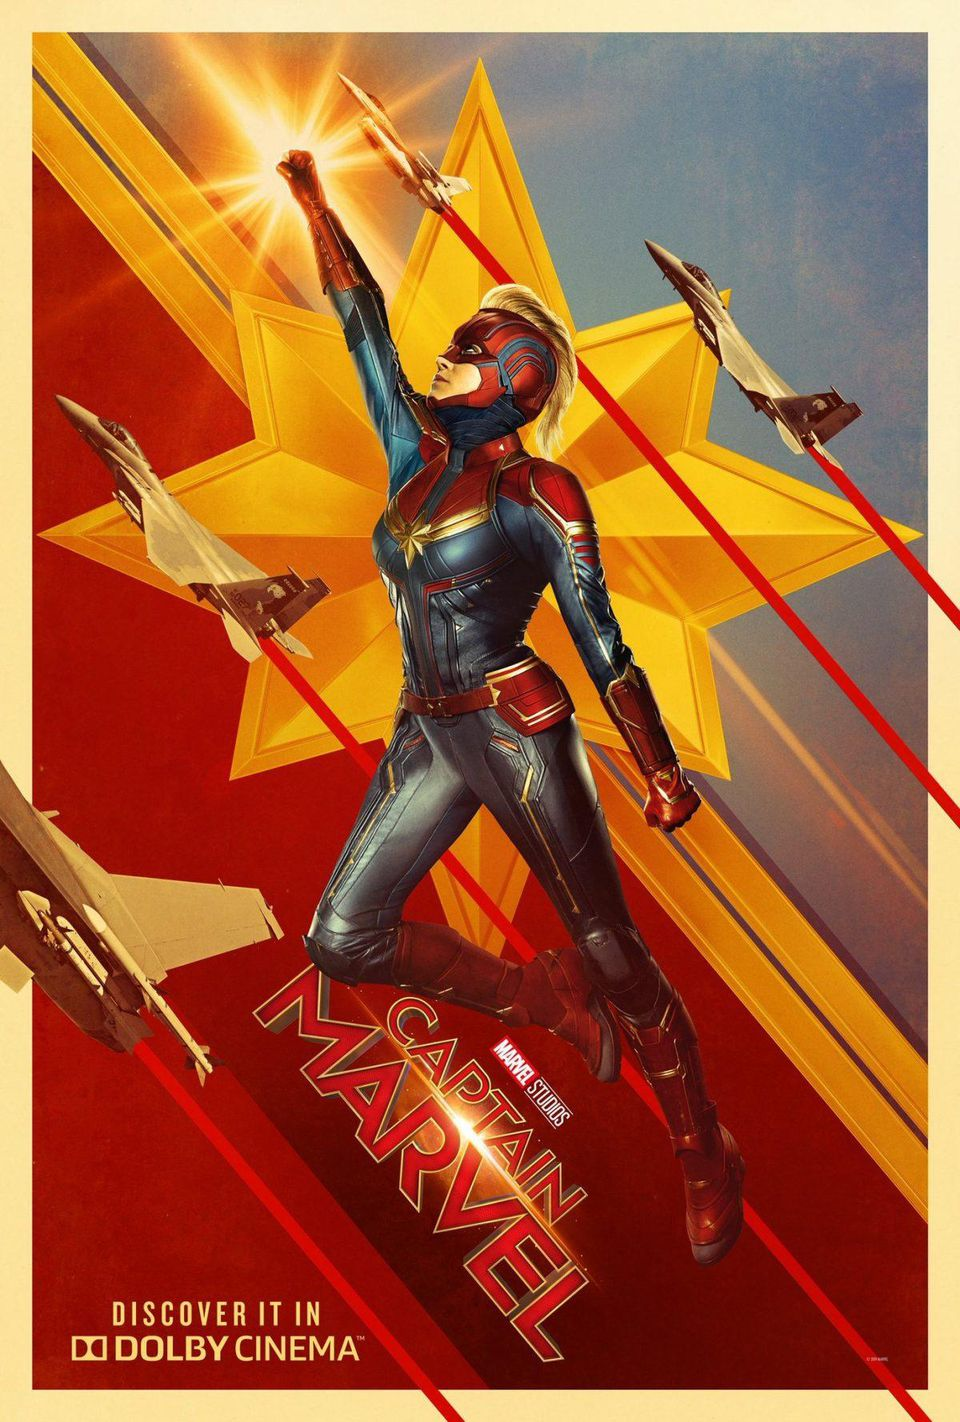 https___blogs-images.forbes.com_markhughes_files_2019_02_CAPTAIN-MARVEL-poster-6-1200x1777